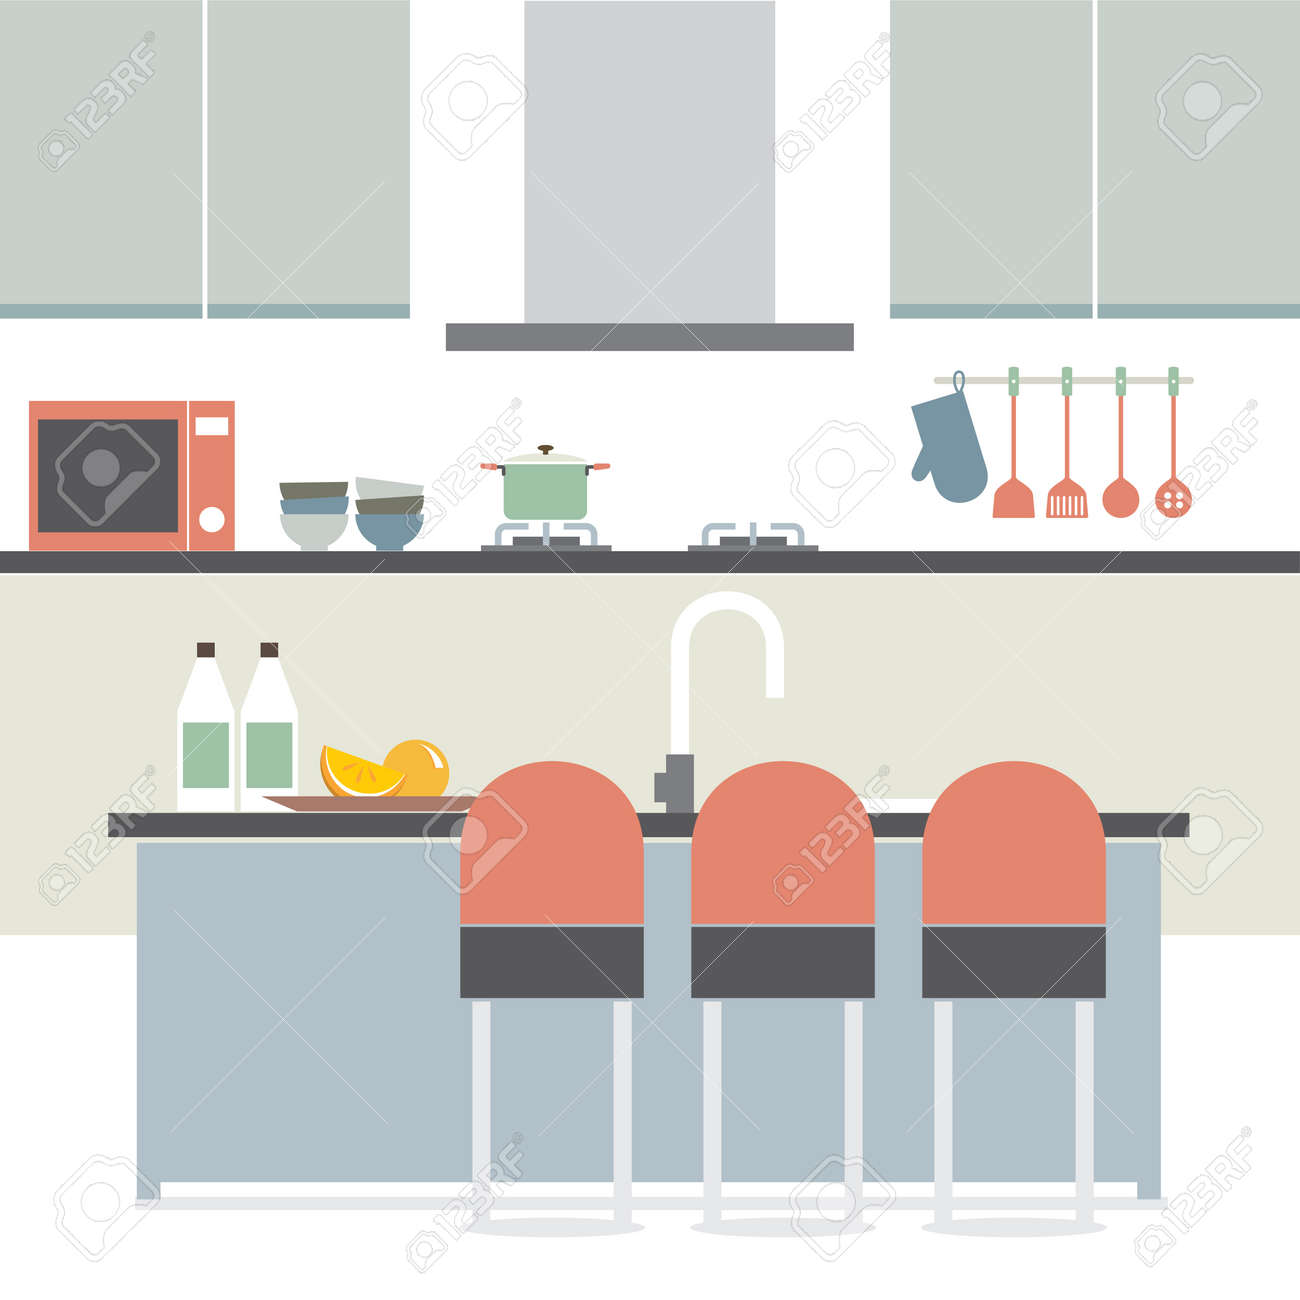 Modern Flat Design Kitchen Interior Illustration Royalty Free